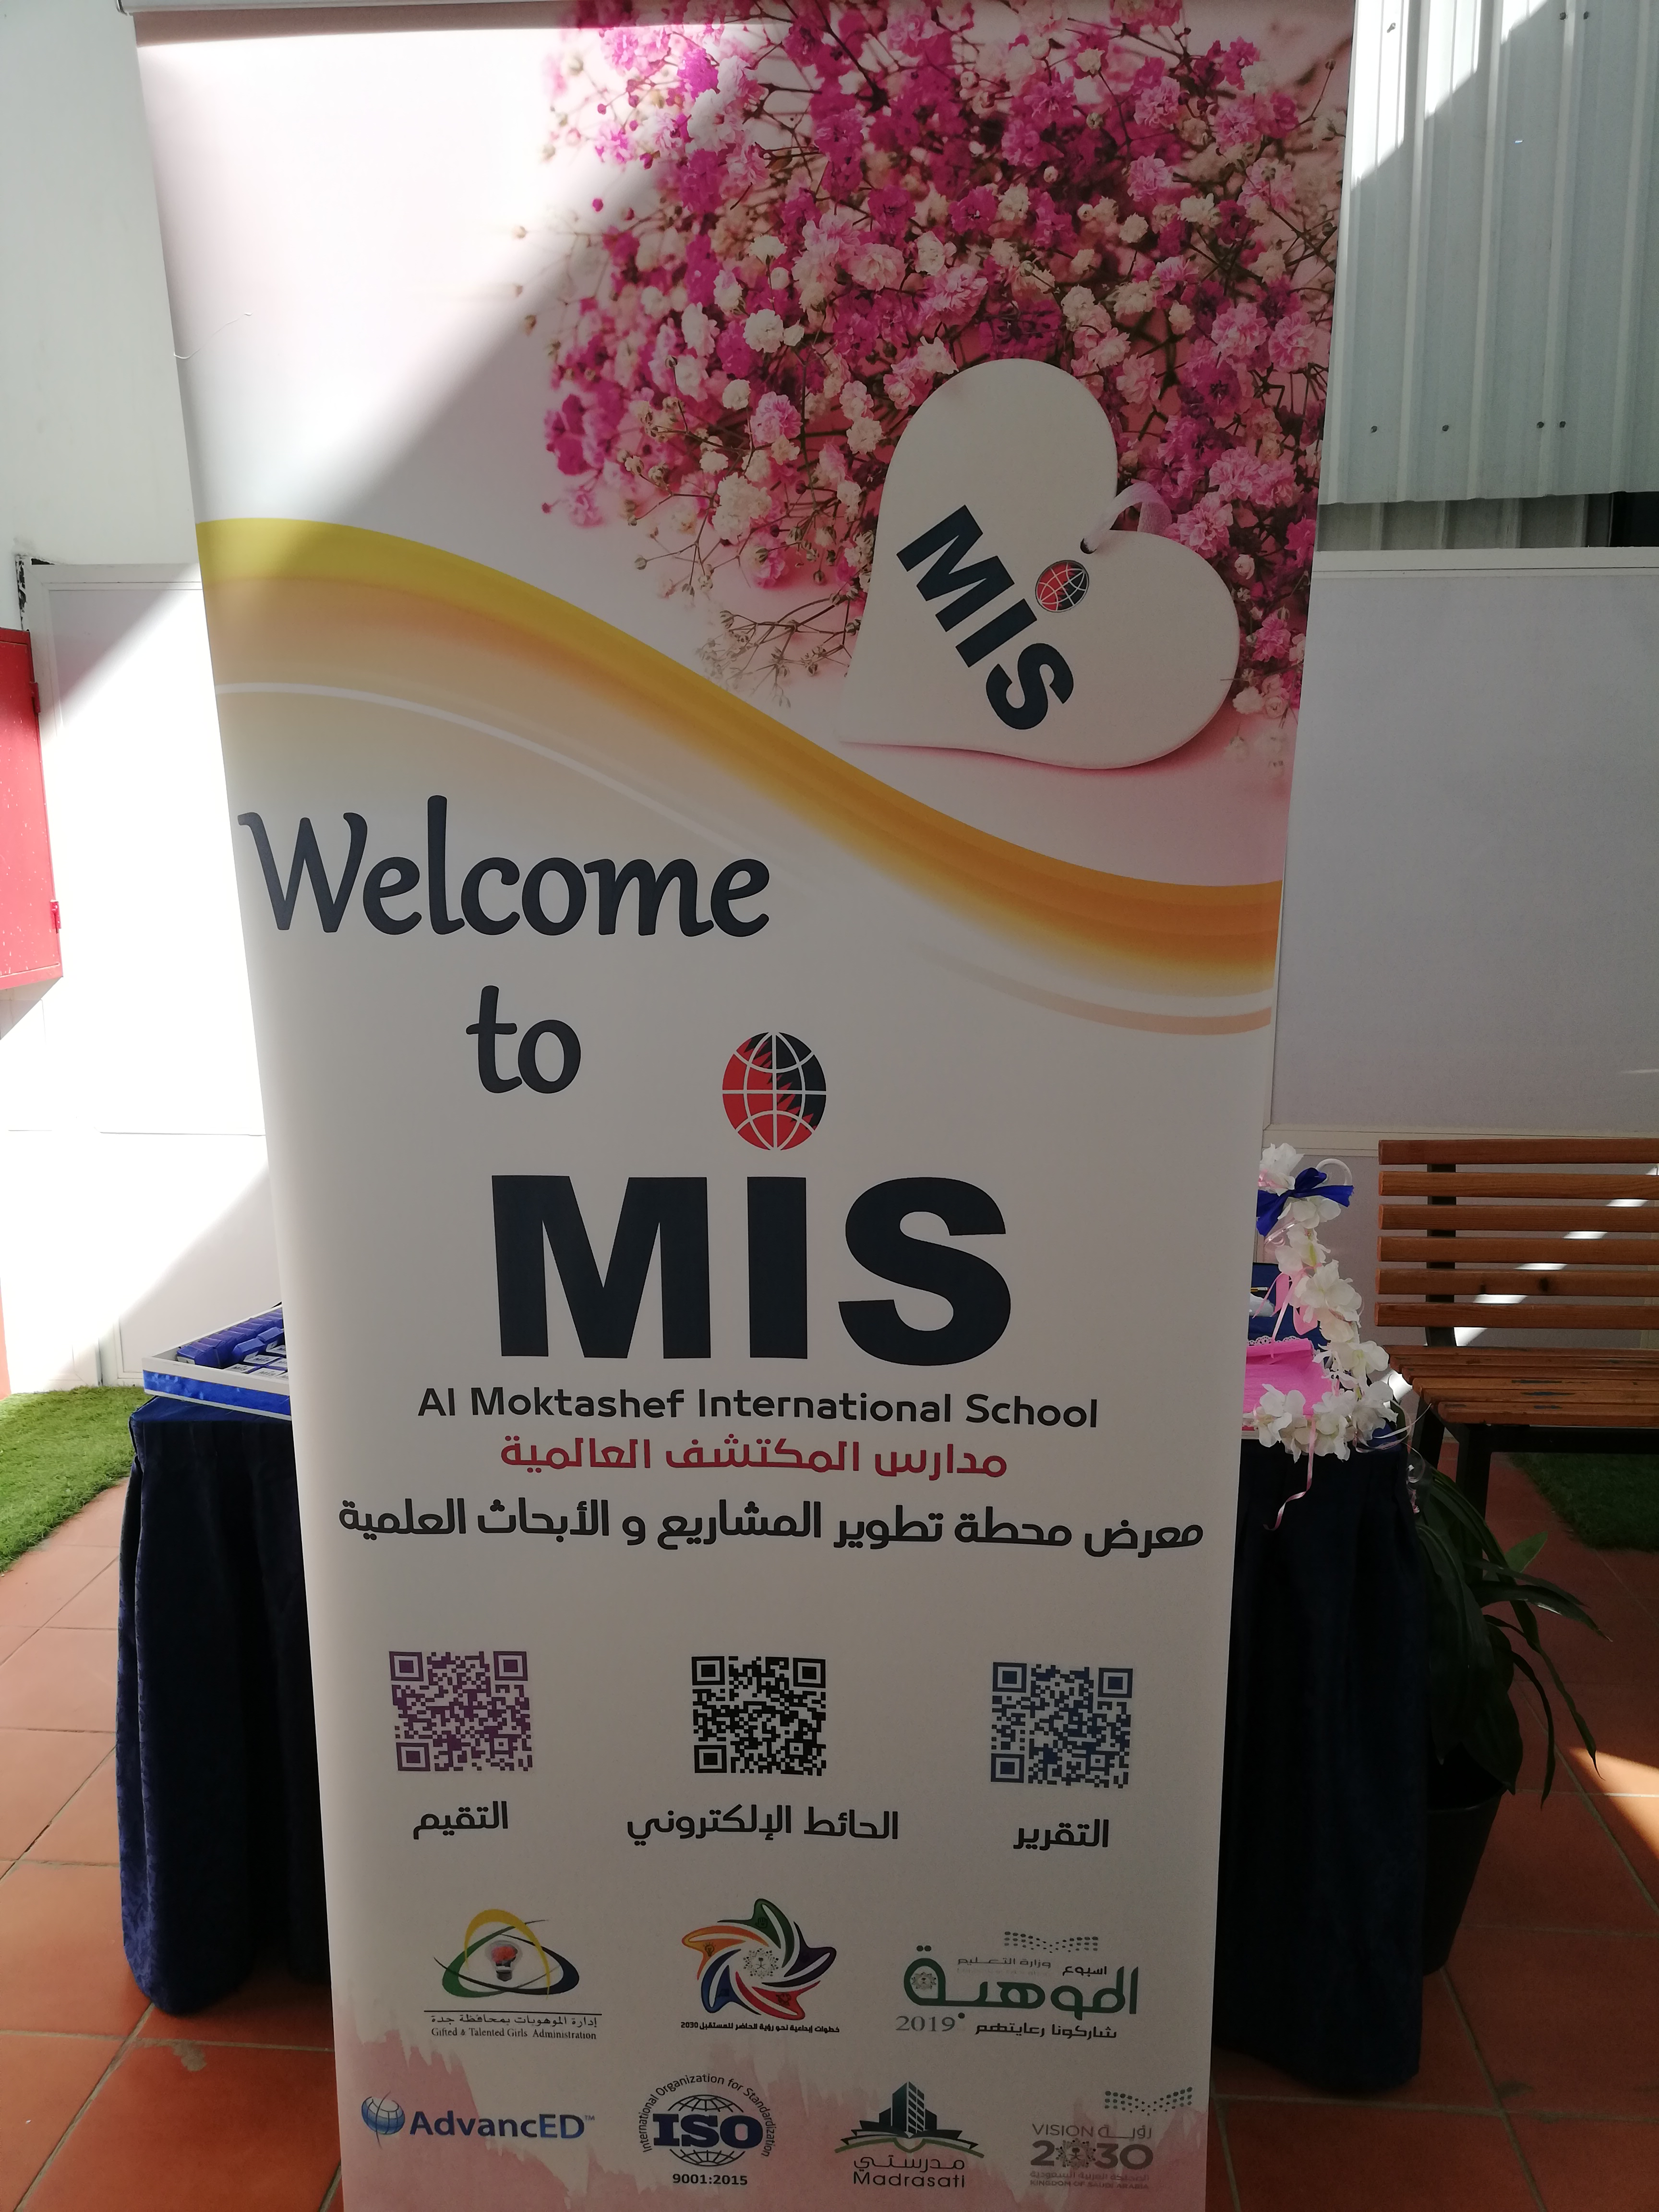 MIS is proudly hosting the Scientific Projects and Research Development Fair with the attendance of 144 scientific project and STEM